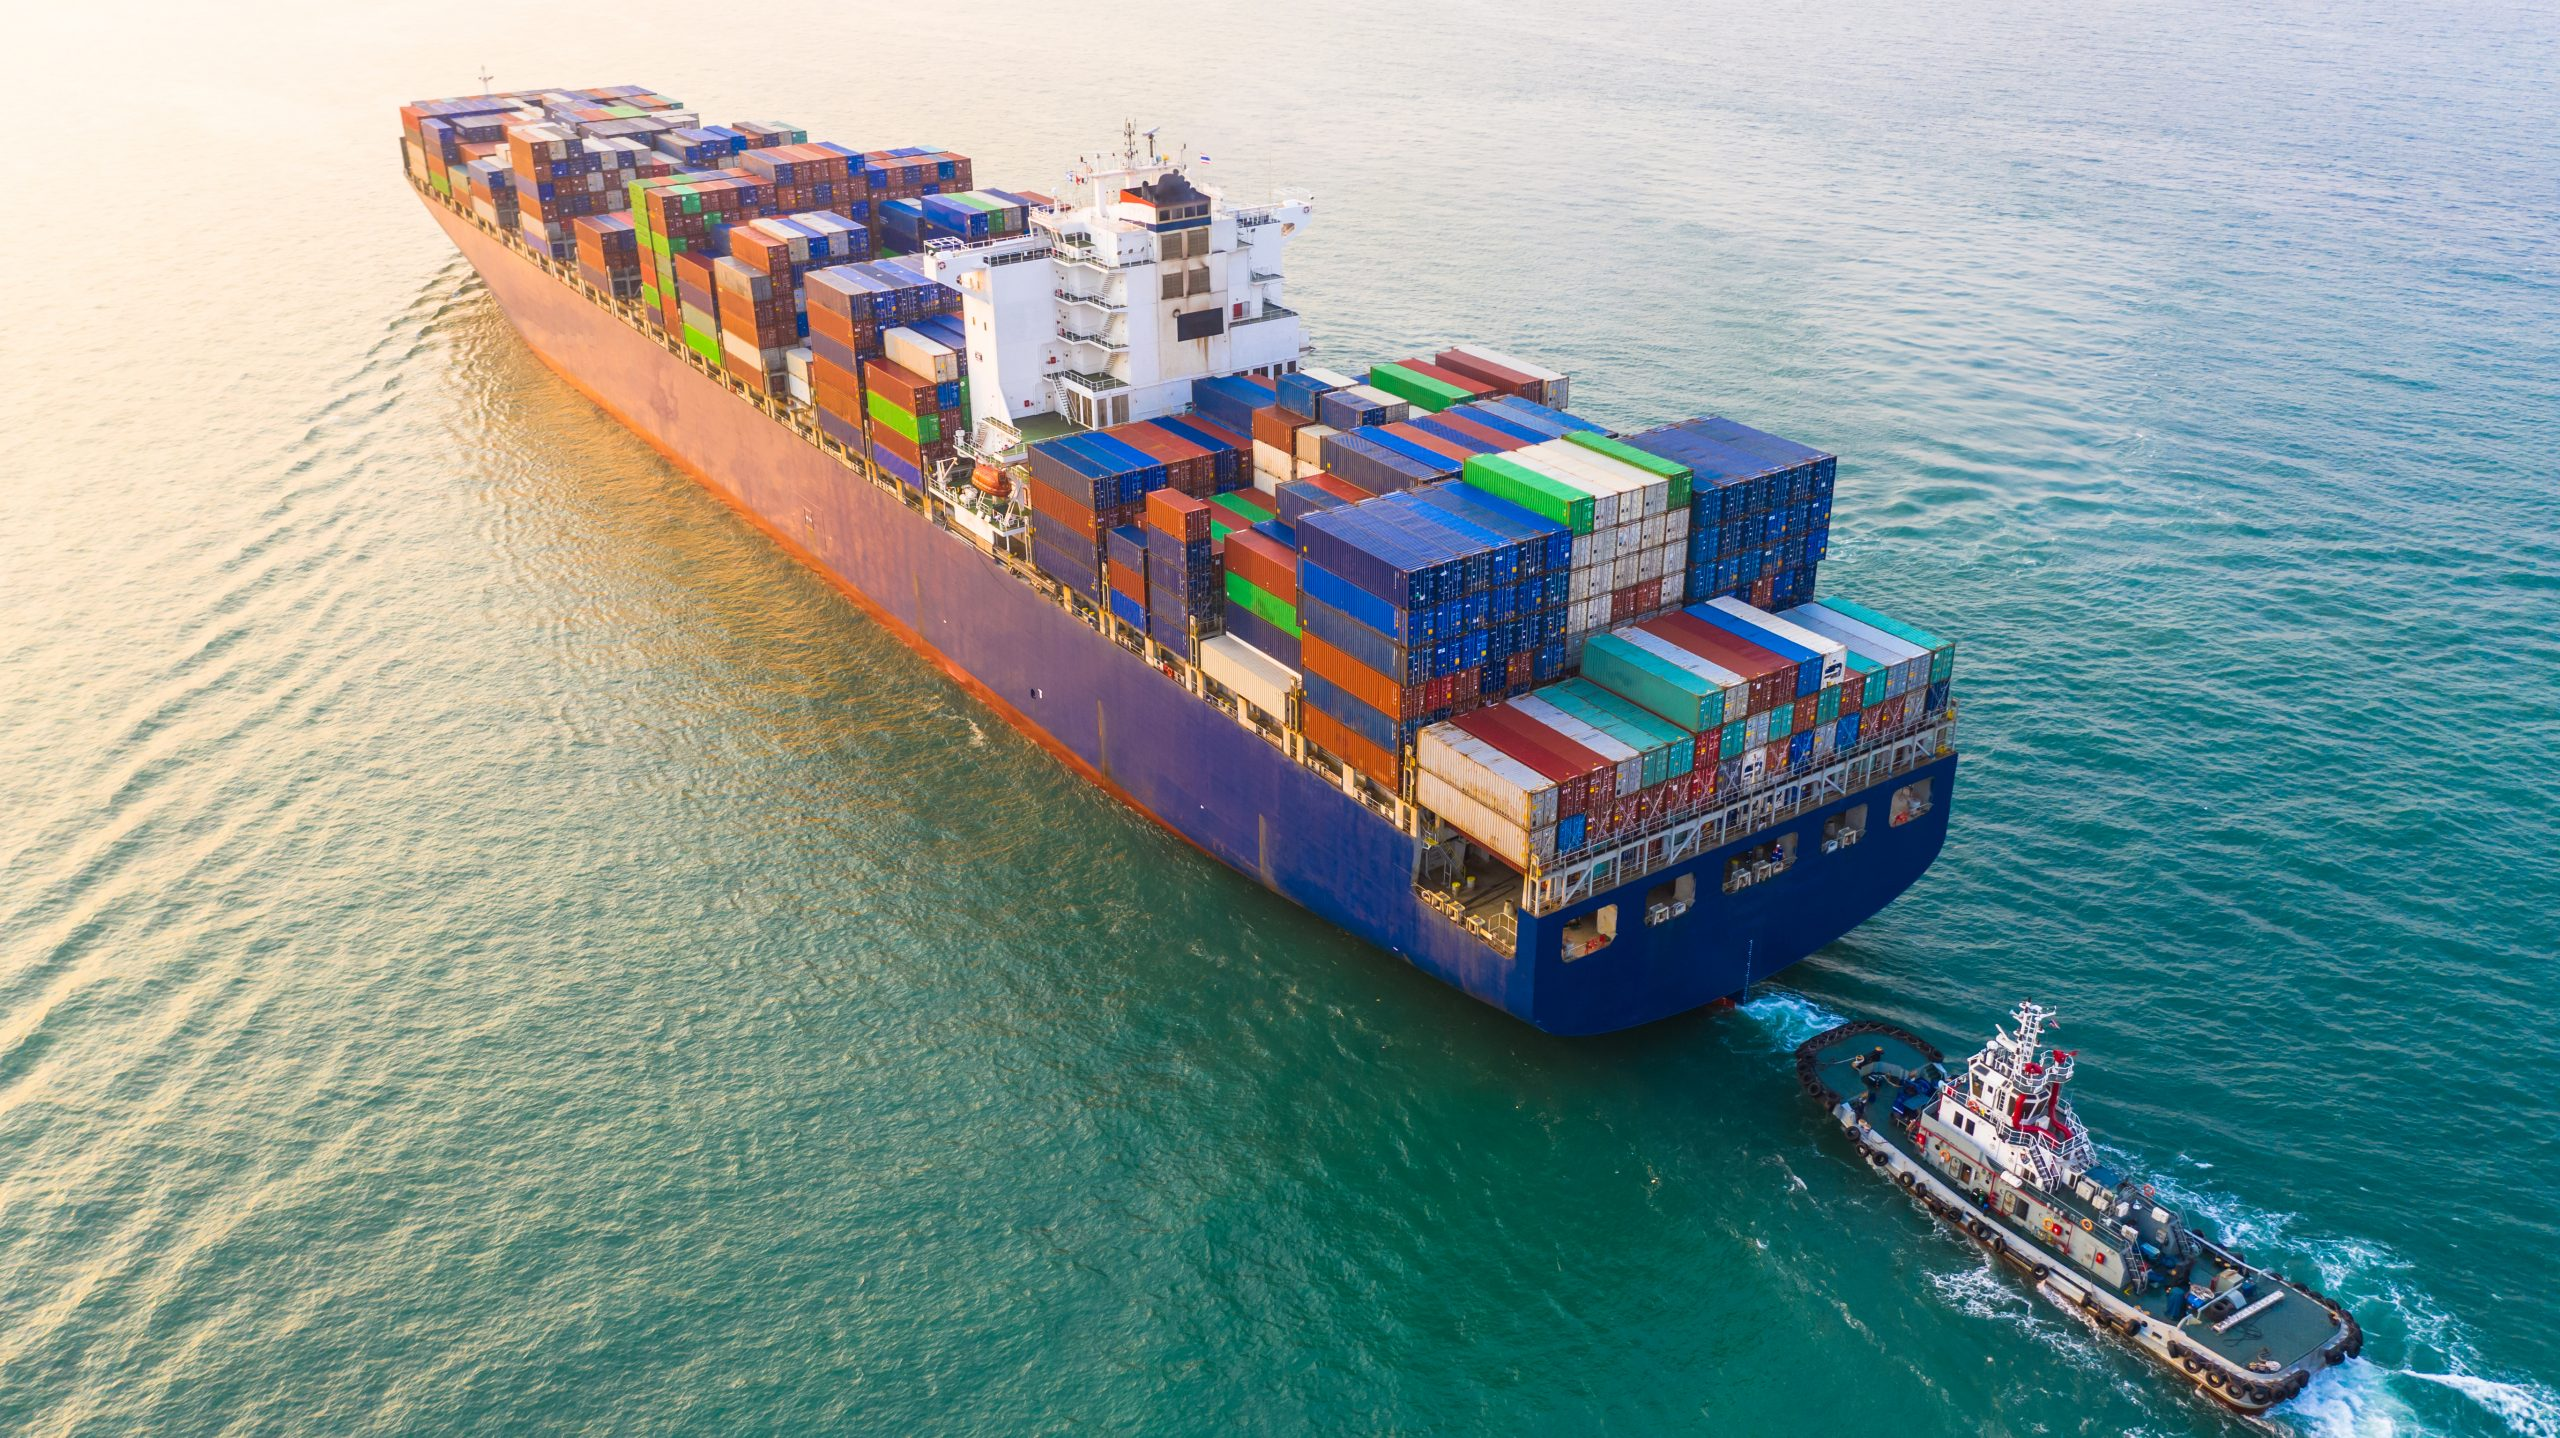 Freight Forwarders: Here's How to Get Through the 2020 Peak Shipping Season